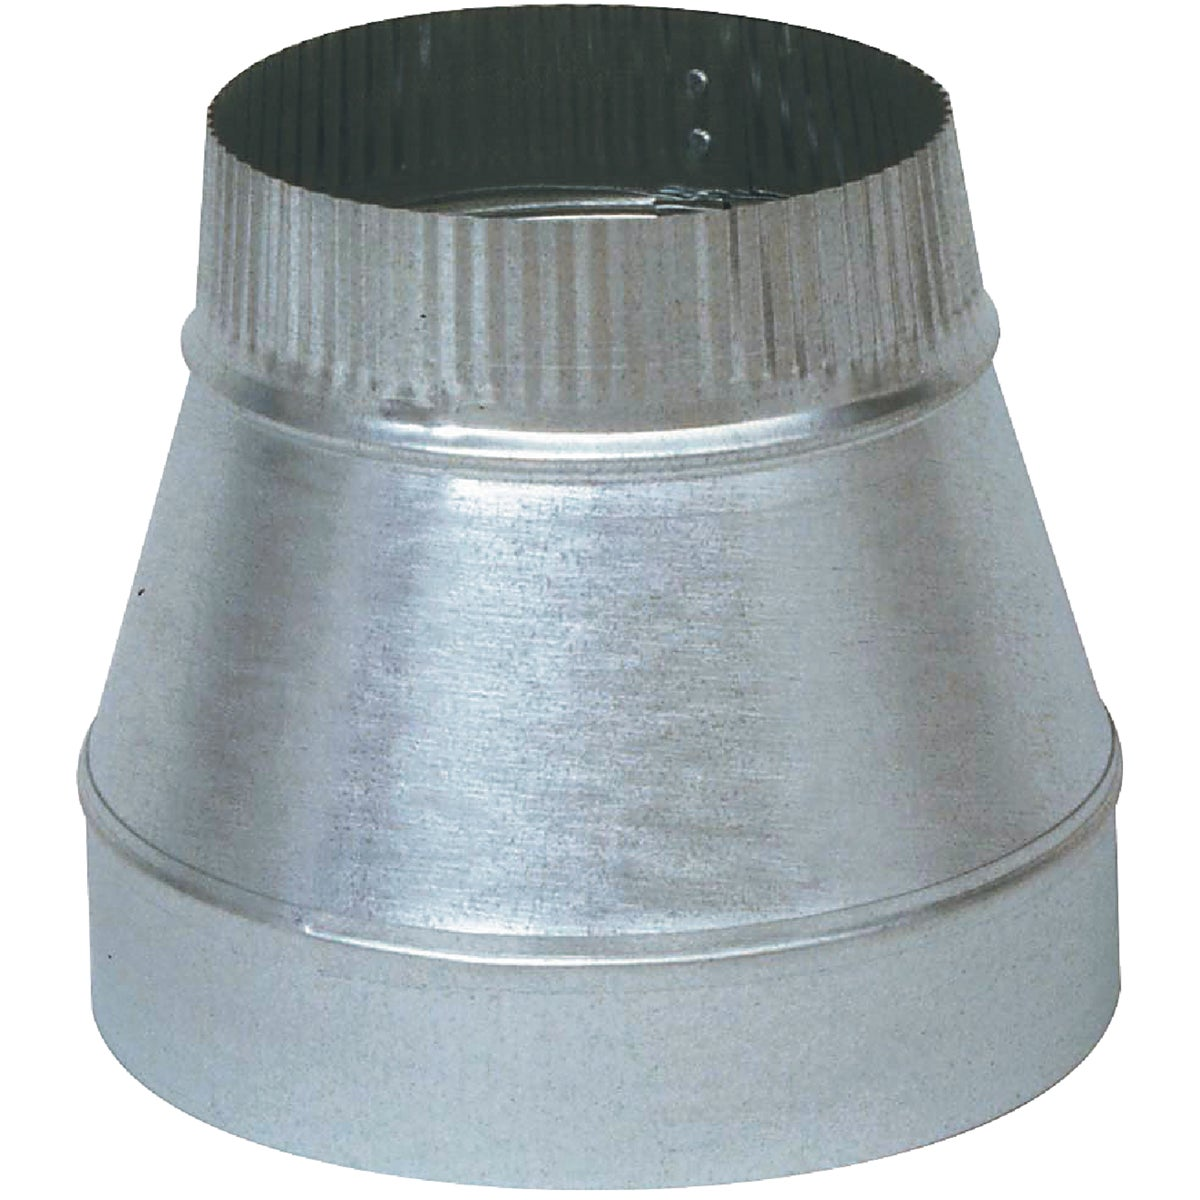 4X3 GALV REDUCER - GV1415 by Imperial Mfg Group